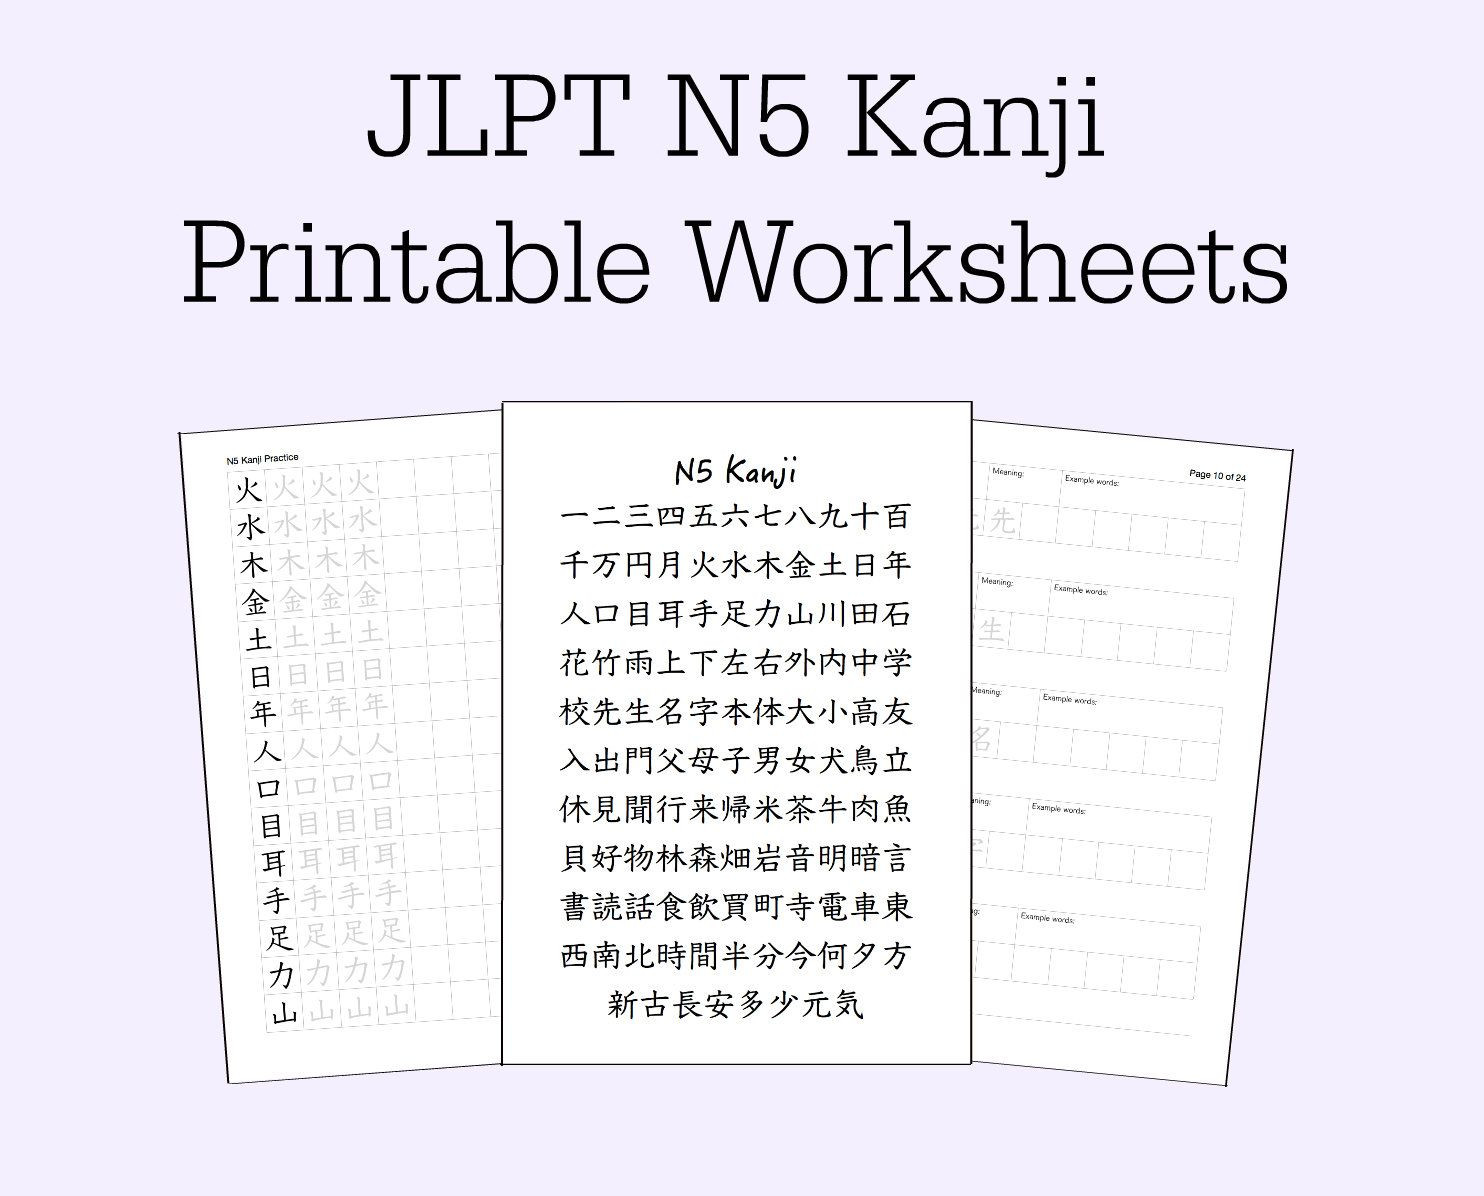 Japanese Worksheets Printable Jlpt N5 Kanji Printable Practice Worksheet Set Download